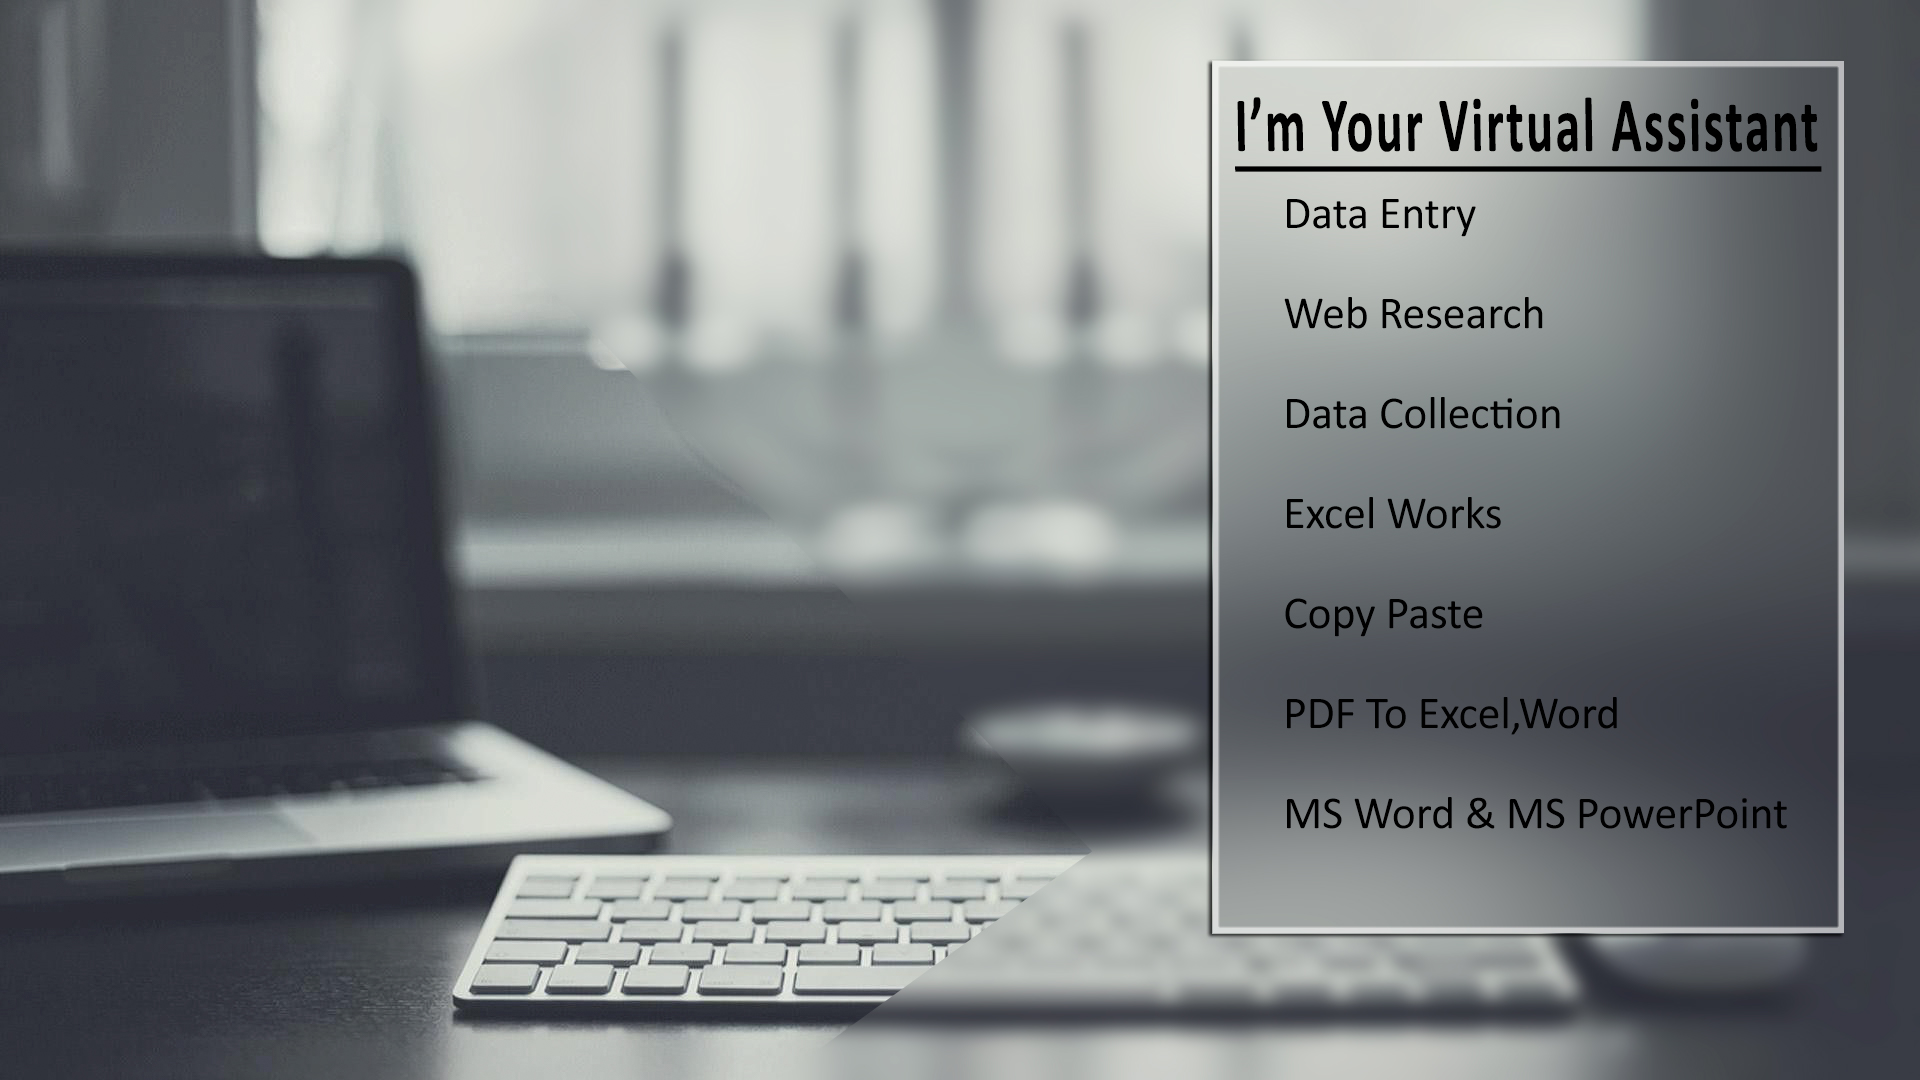 I Will Be Your Data Entry / Virtual Assistant